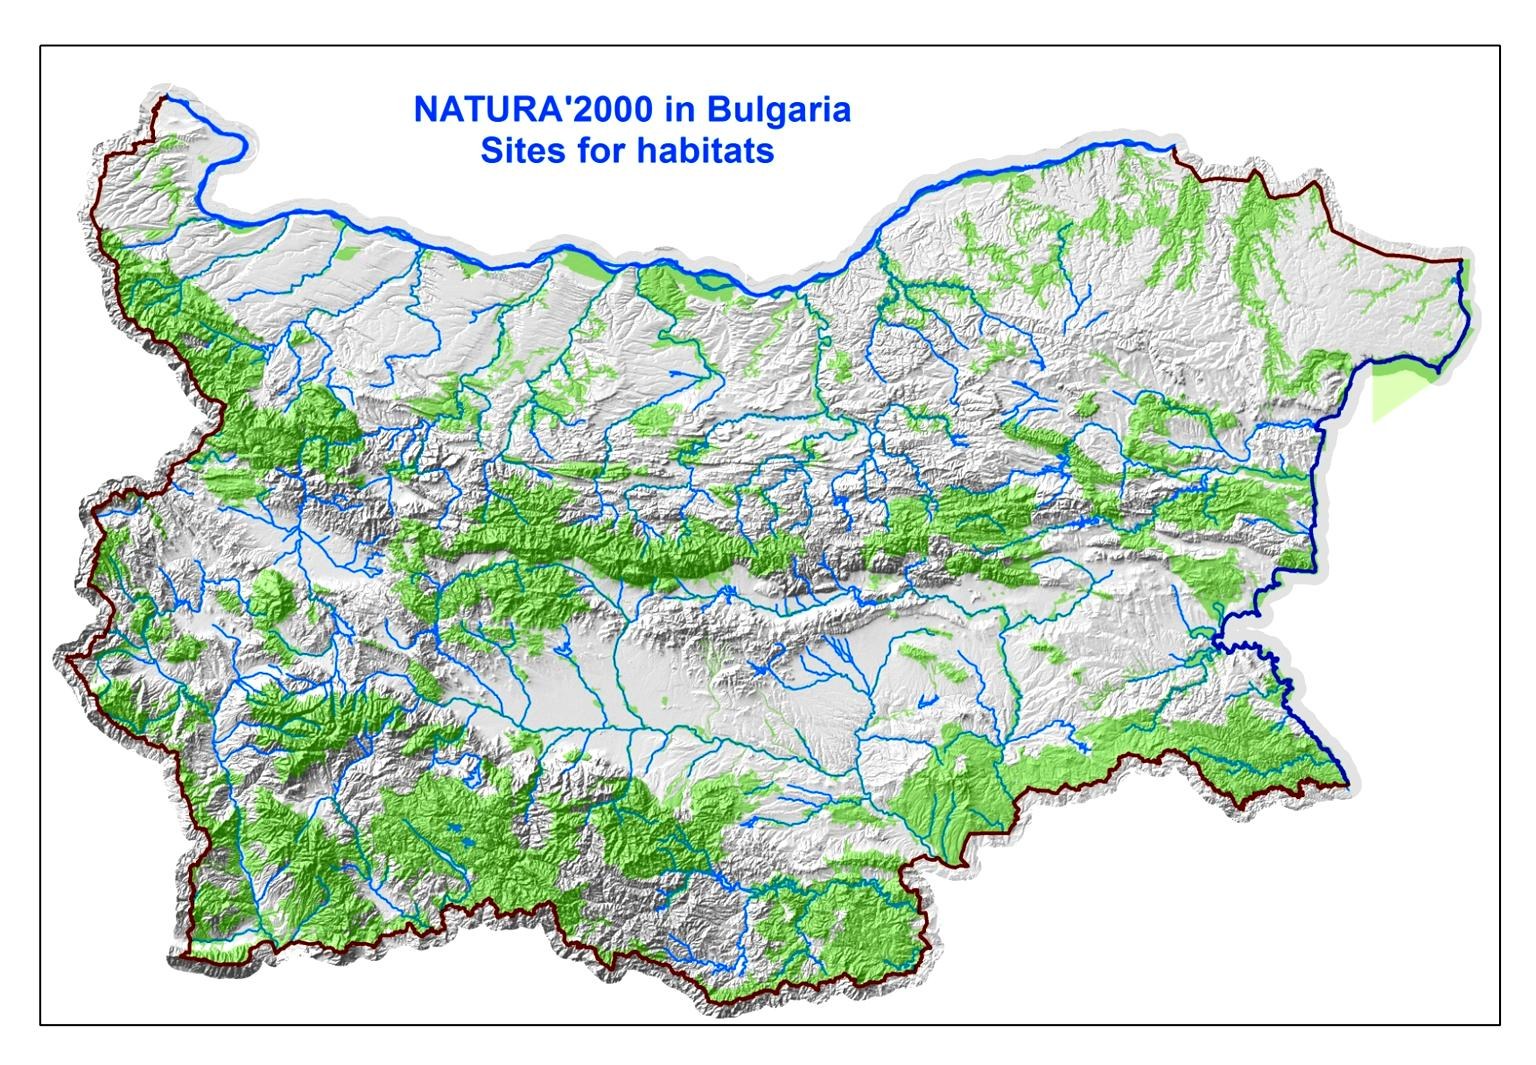 Three NATURA 2000 sites (Srebarna Lake, Upper Mesta River and